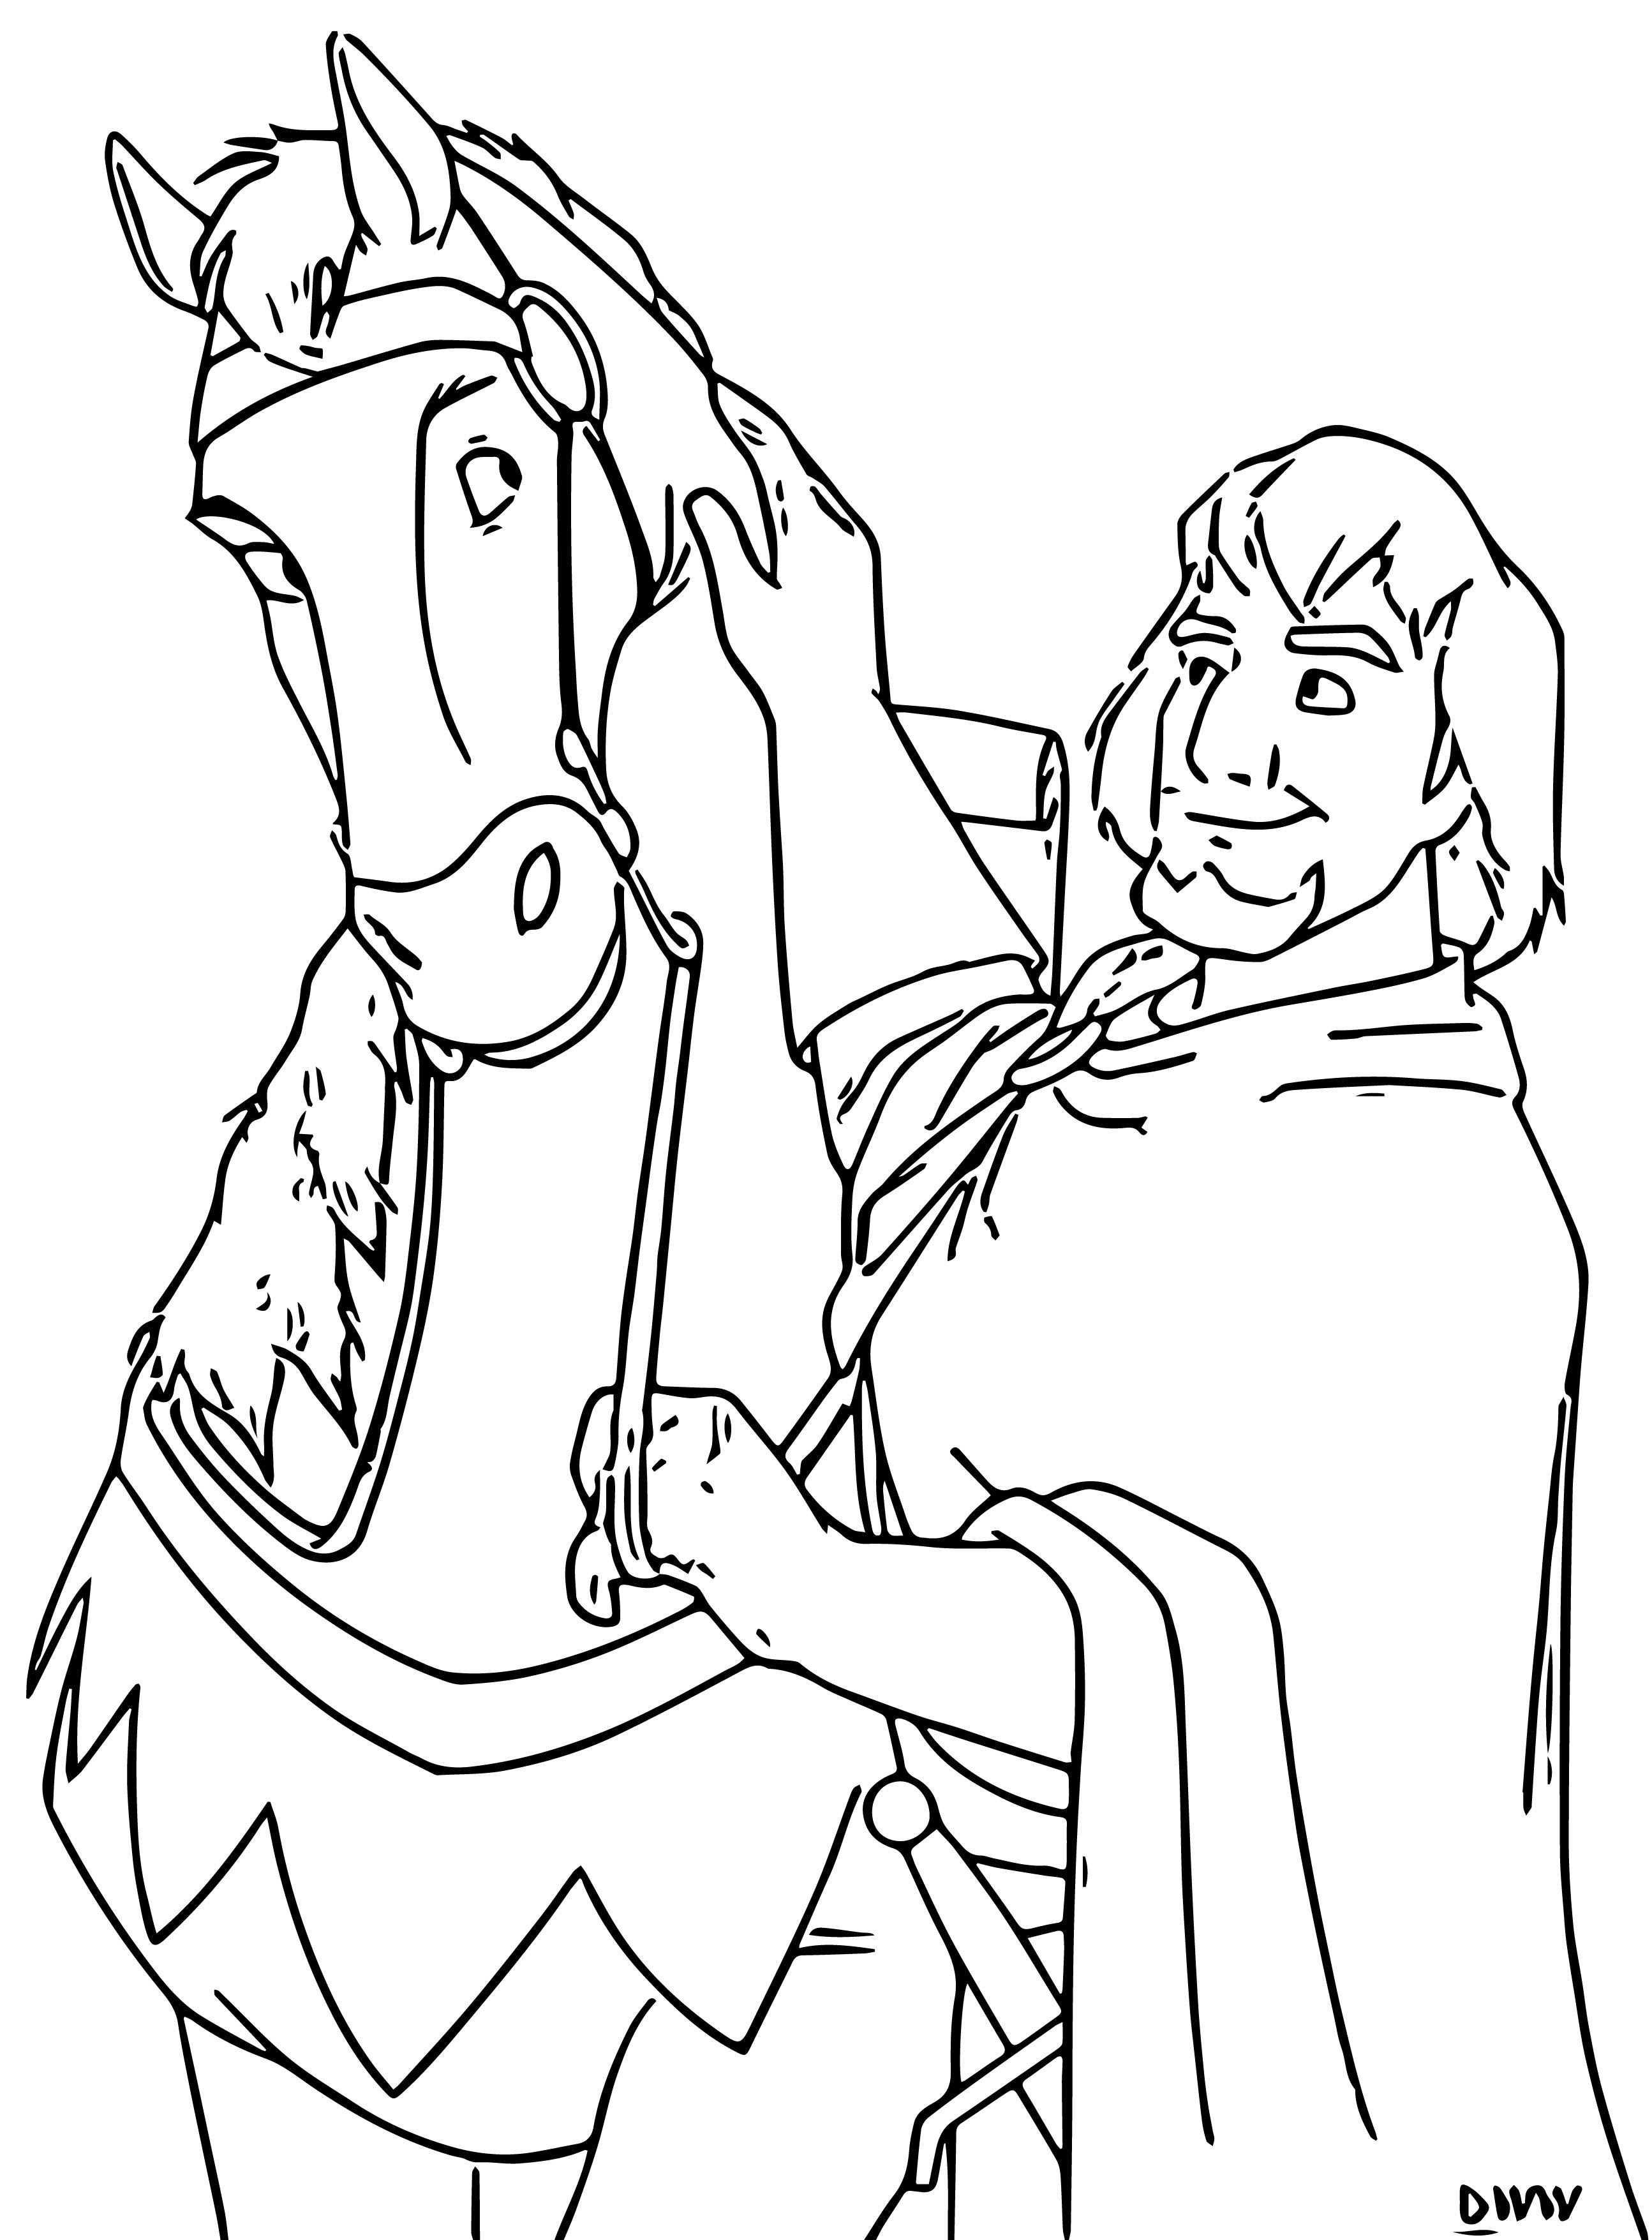 The Hunchback Of Notre Dame Hfr3 Cartoon Coloring Pages